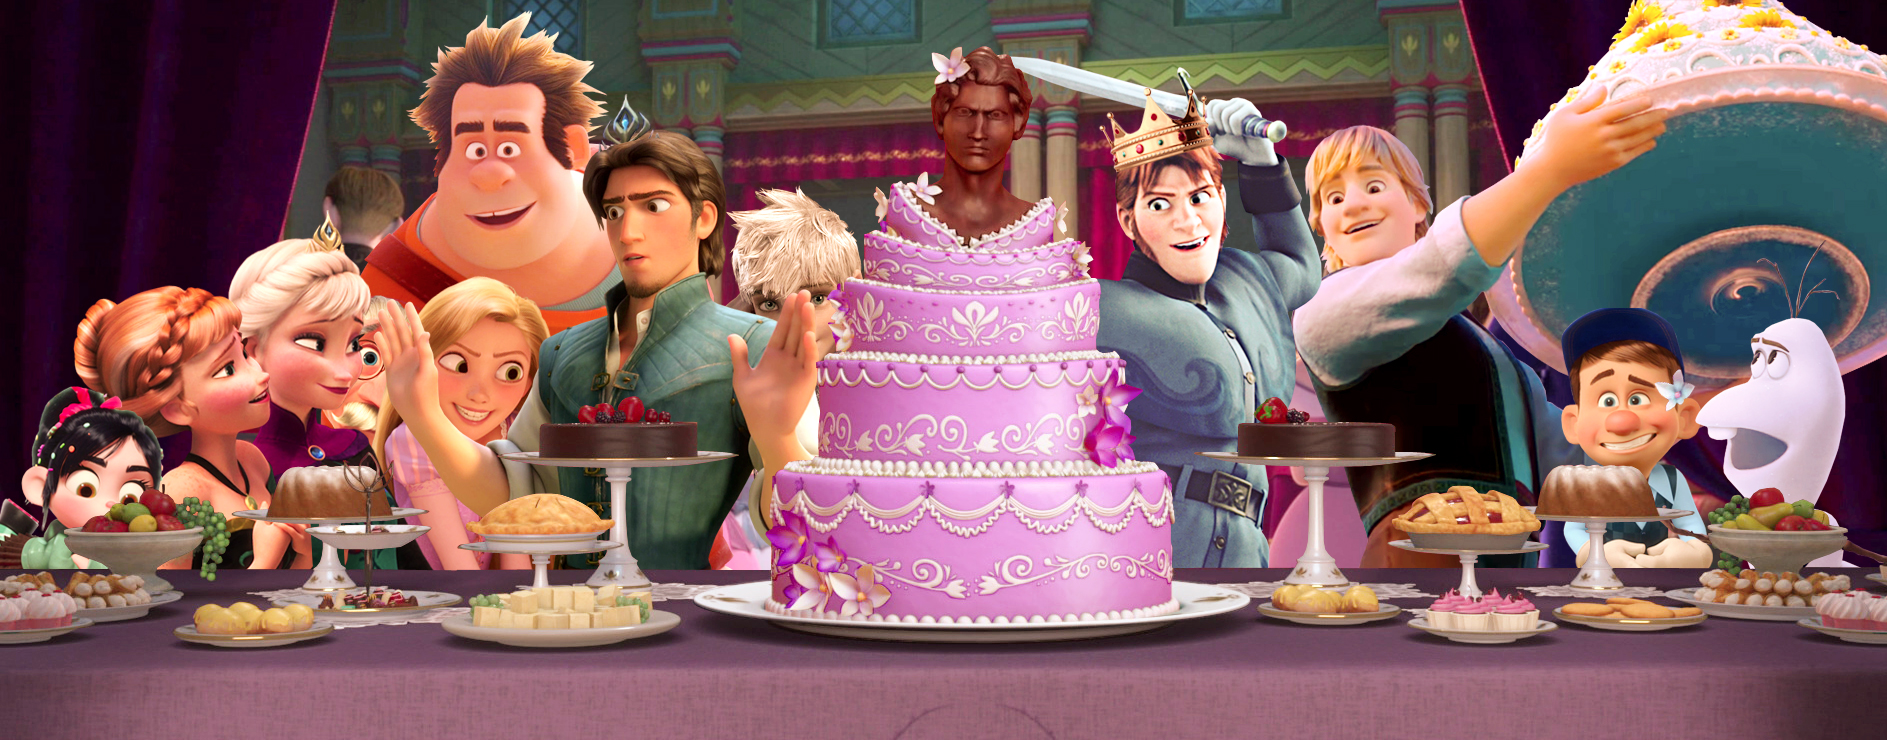 Anna s birthday party frozen fever by simmeh on deviantart